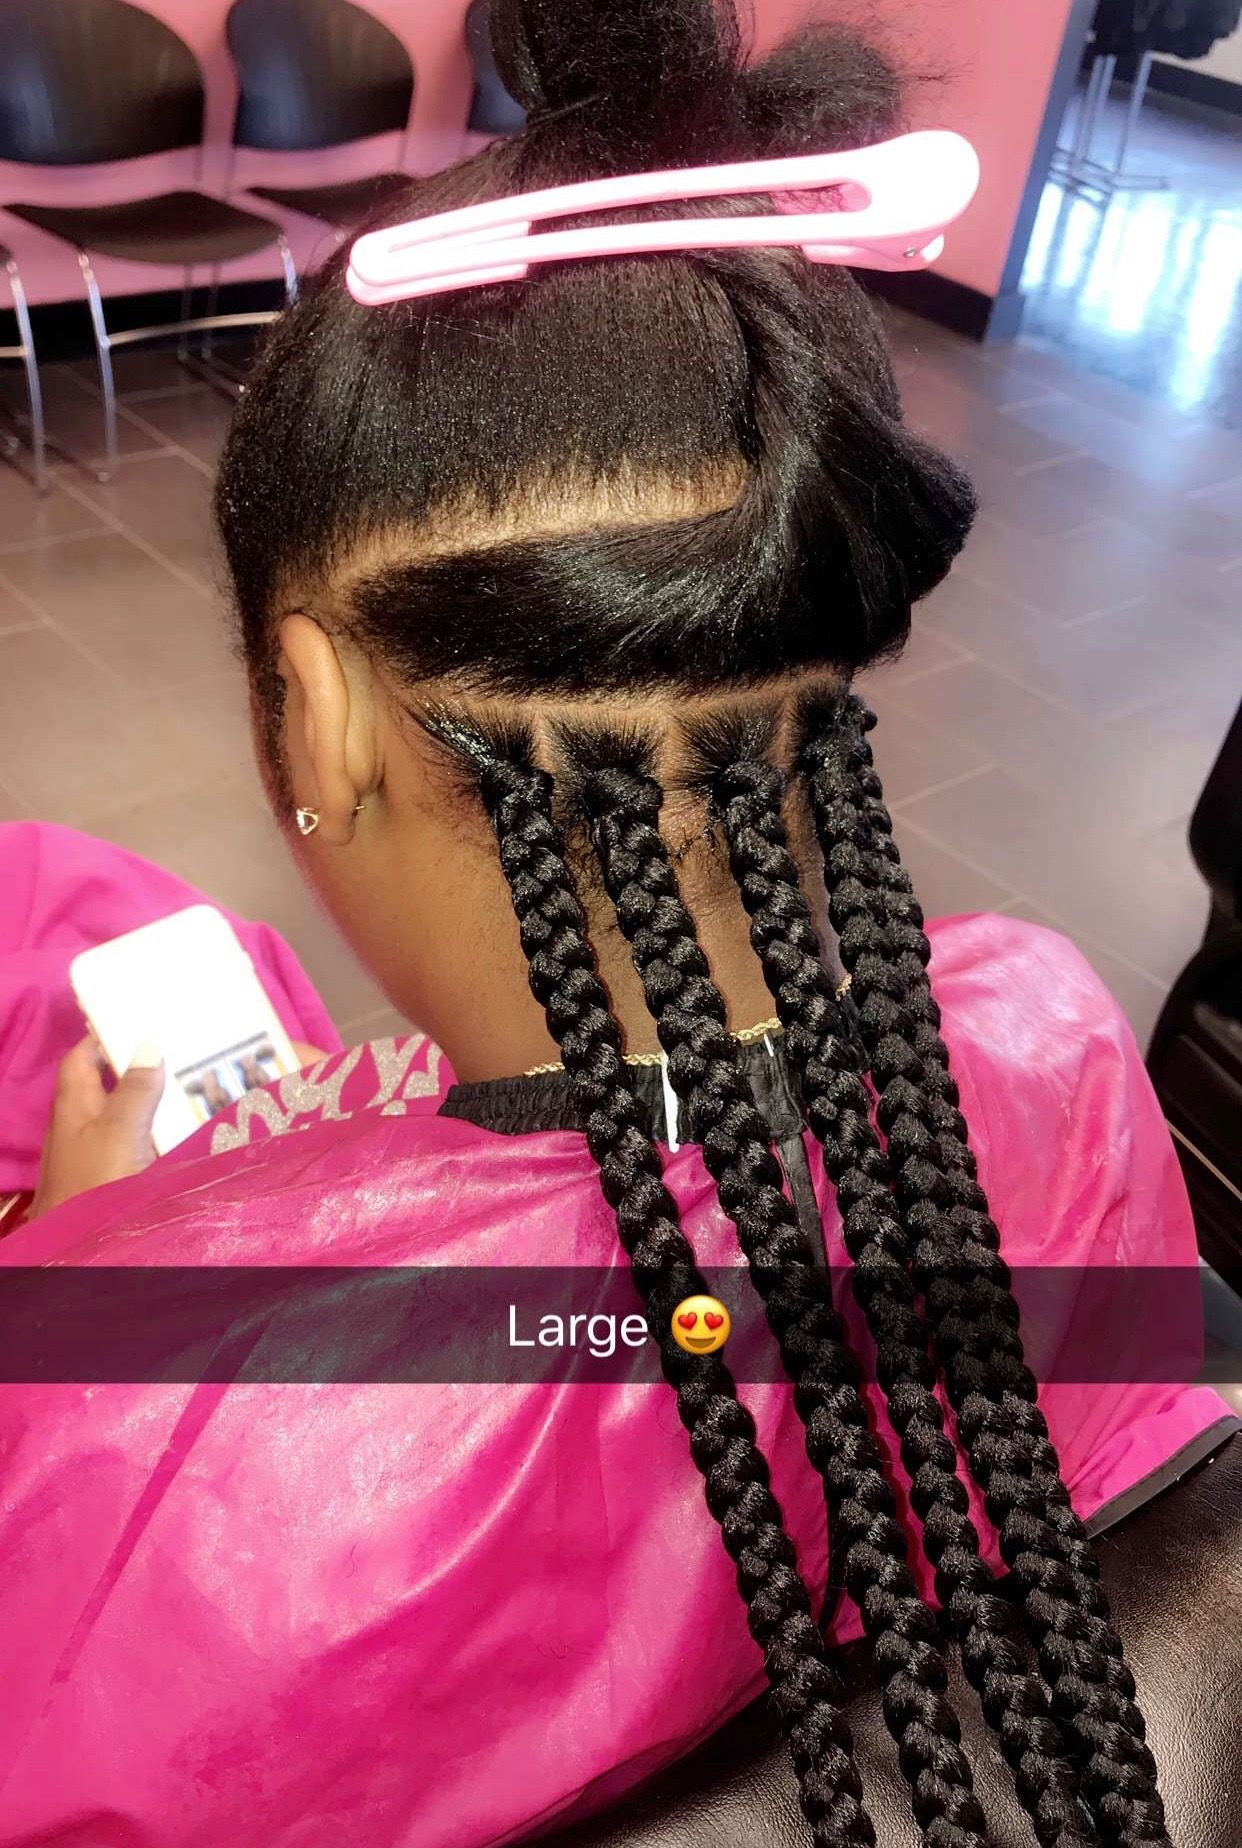 Follow TropicM for more   Hair Salon Materials Products